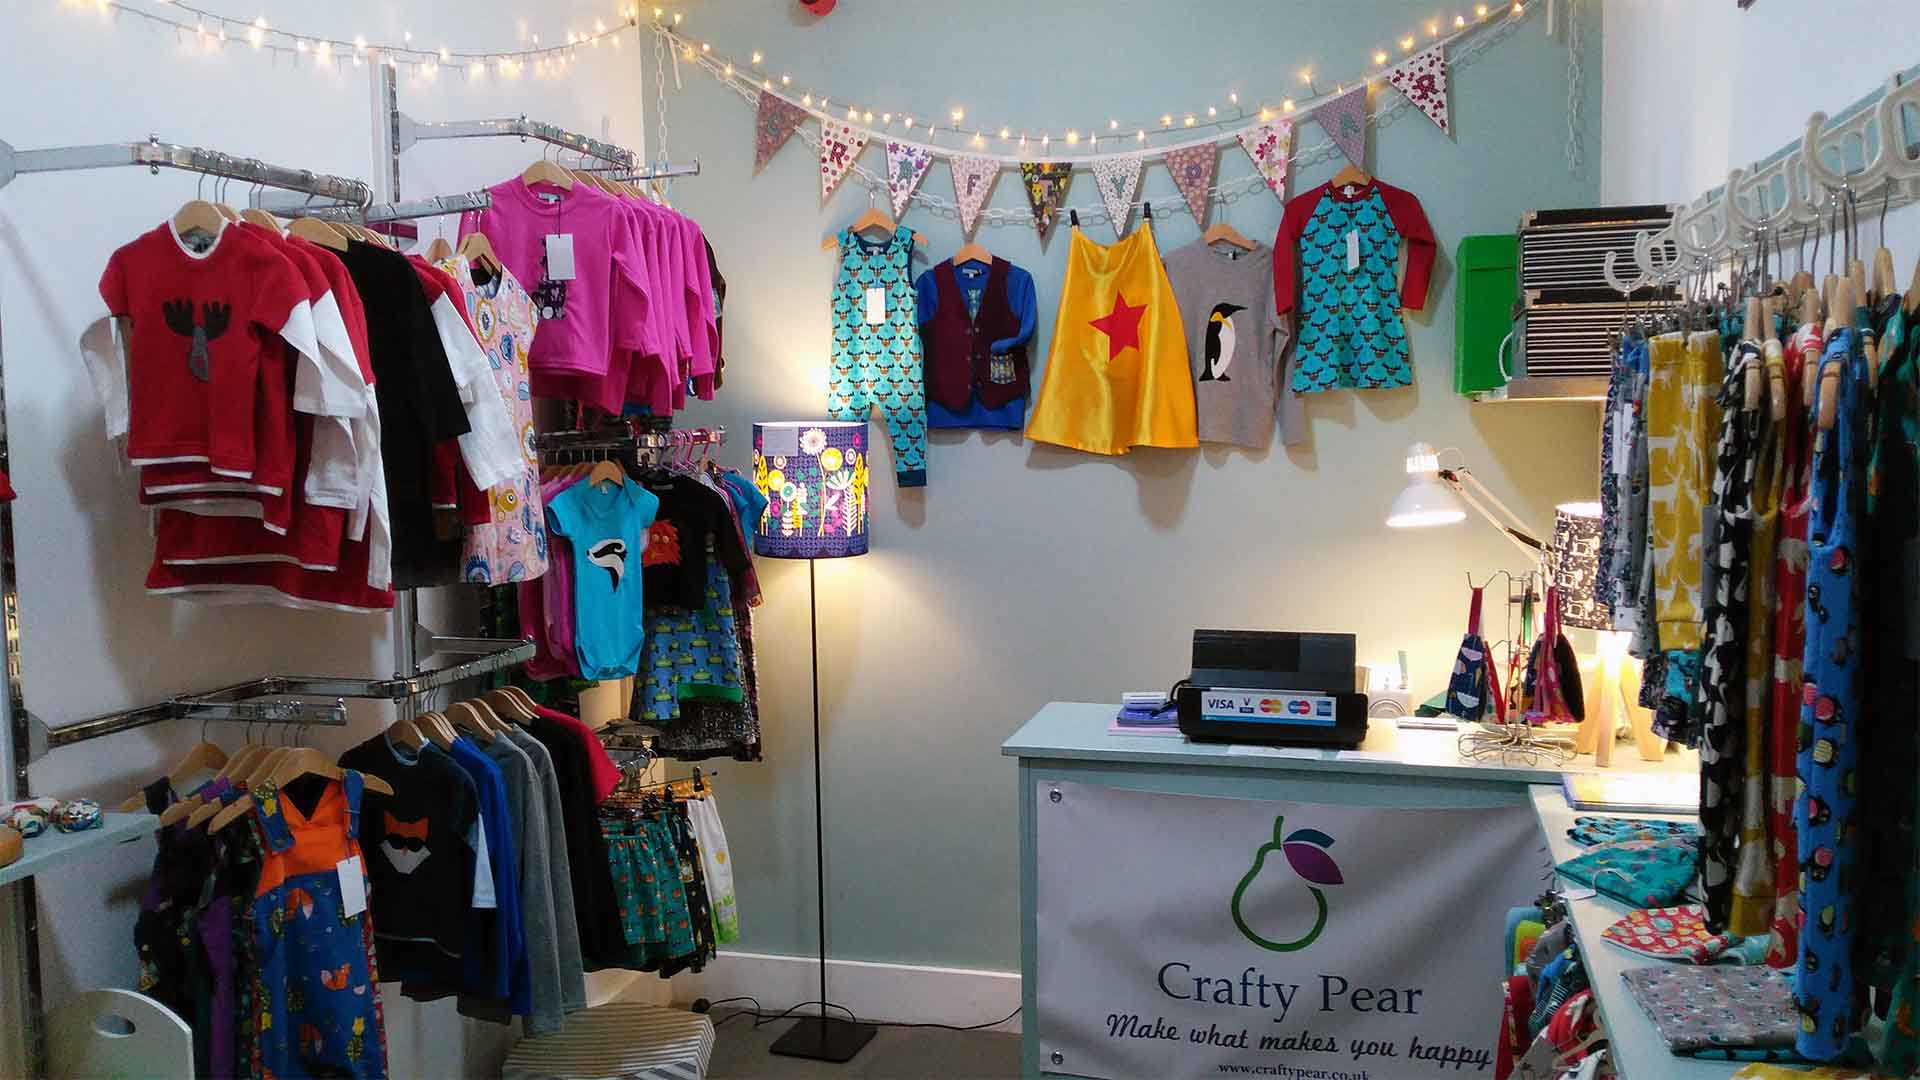 crafty pear children's clothes retail under 1 roof kids